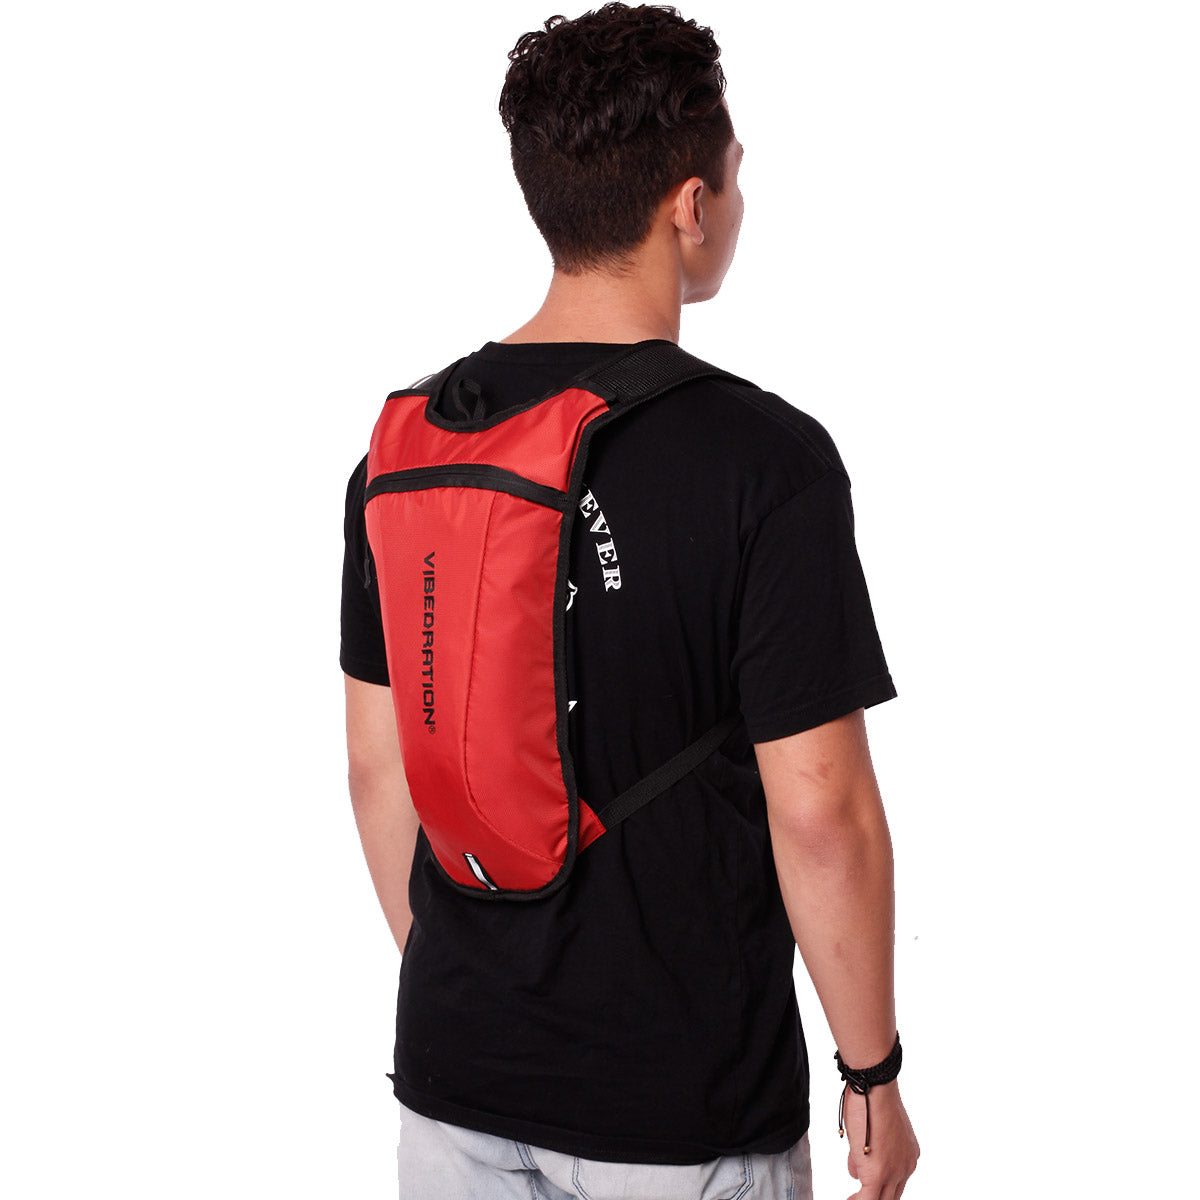 Side view of male wearing dark orange hydration backpack.